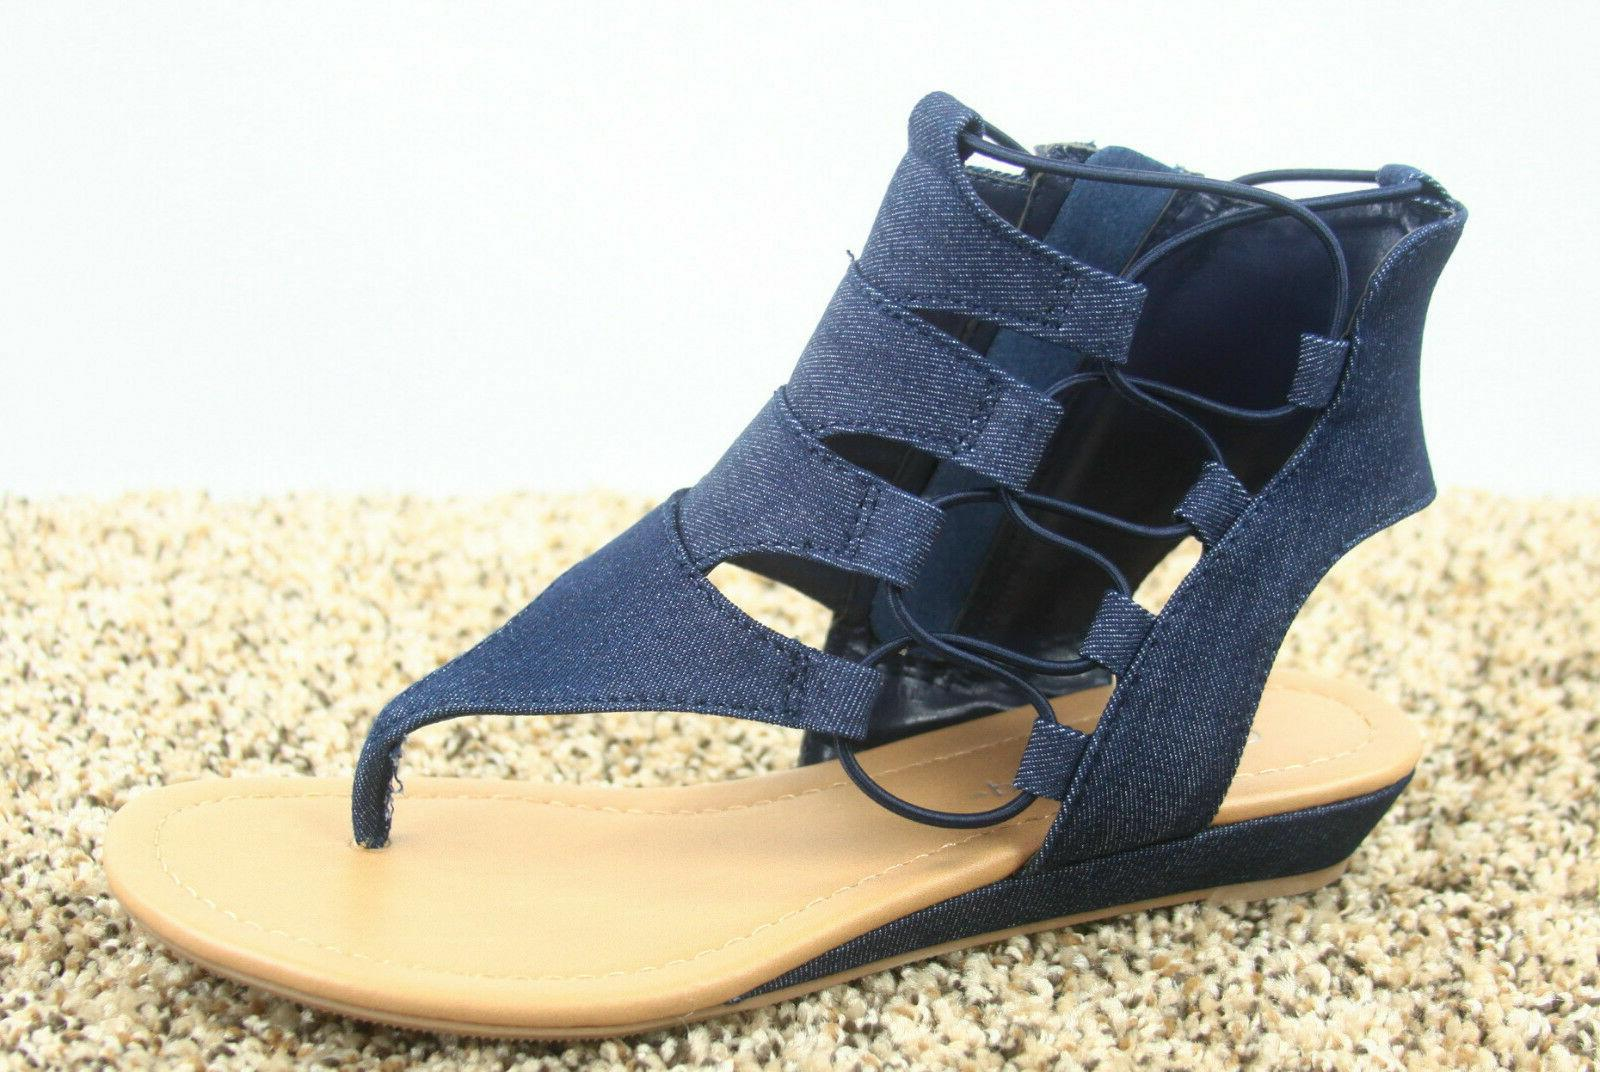 Women's Toe Strappy Sandal Shoes Size